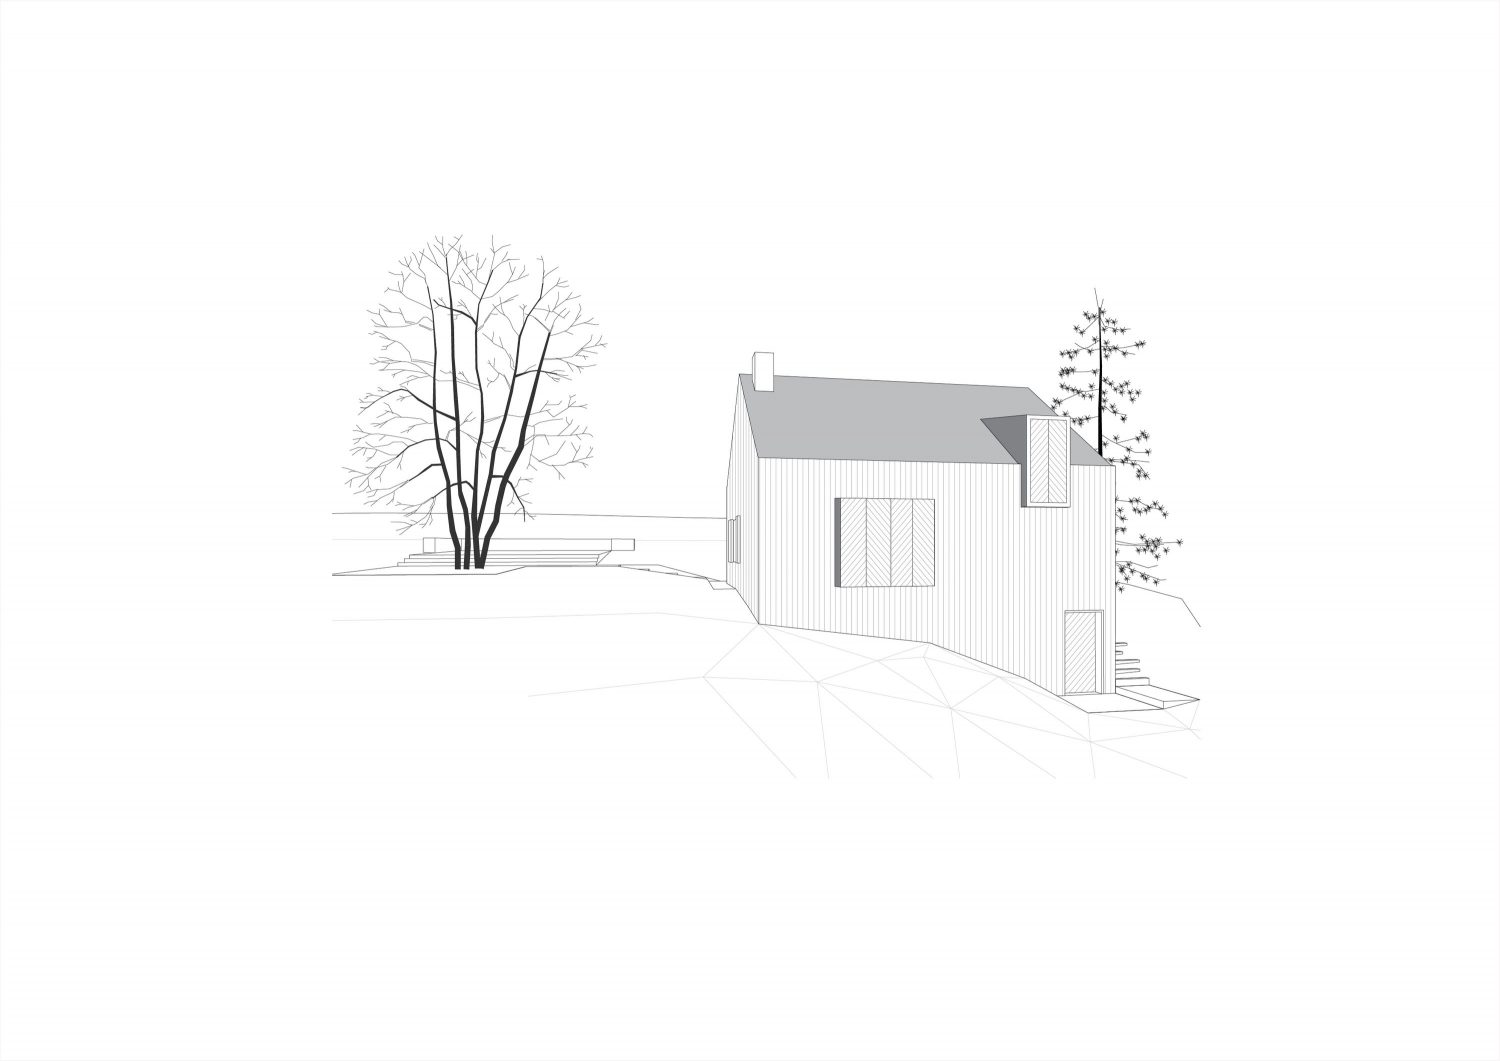 Small Black House by Tomislav Soldo